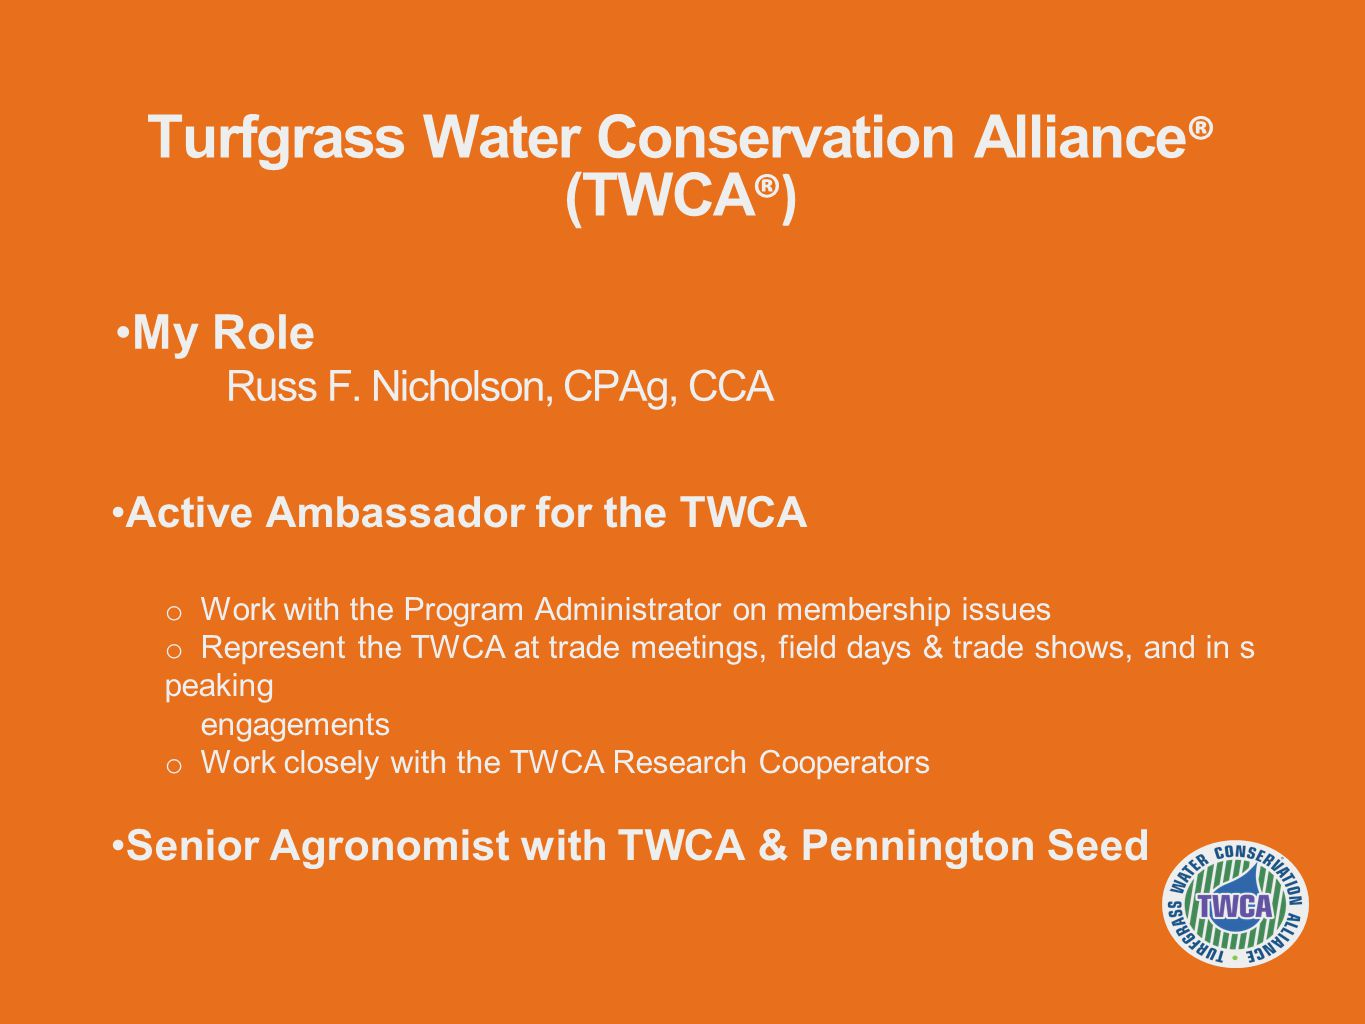 Active Ambassador for the TWCA o Work with the Program Administrator on membership issues o Represent the TWCA at trade meetings, field days & trade shows, and in s peaking engagements o Work closely with the TWCA Research Cooperators Senior Agronomist with TWCA & Pennington Seed My Role Russ F.